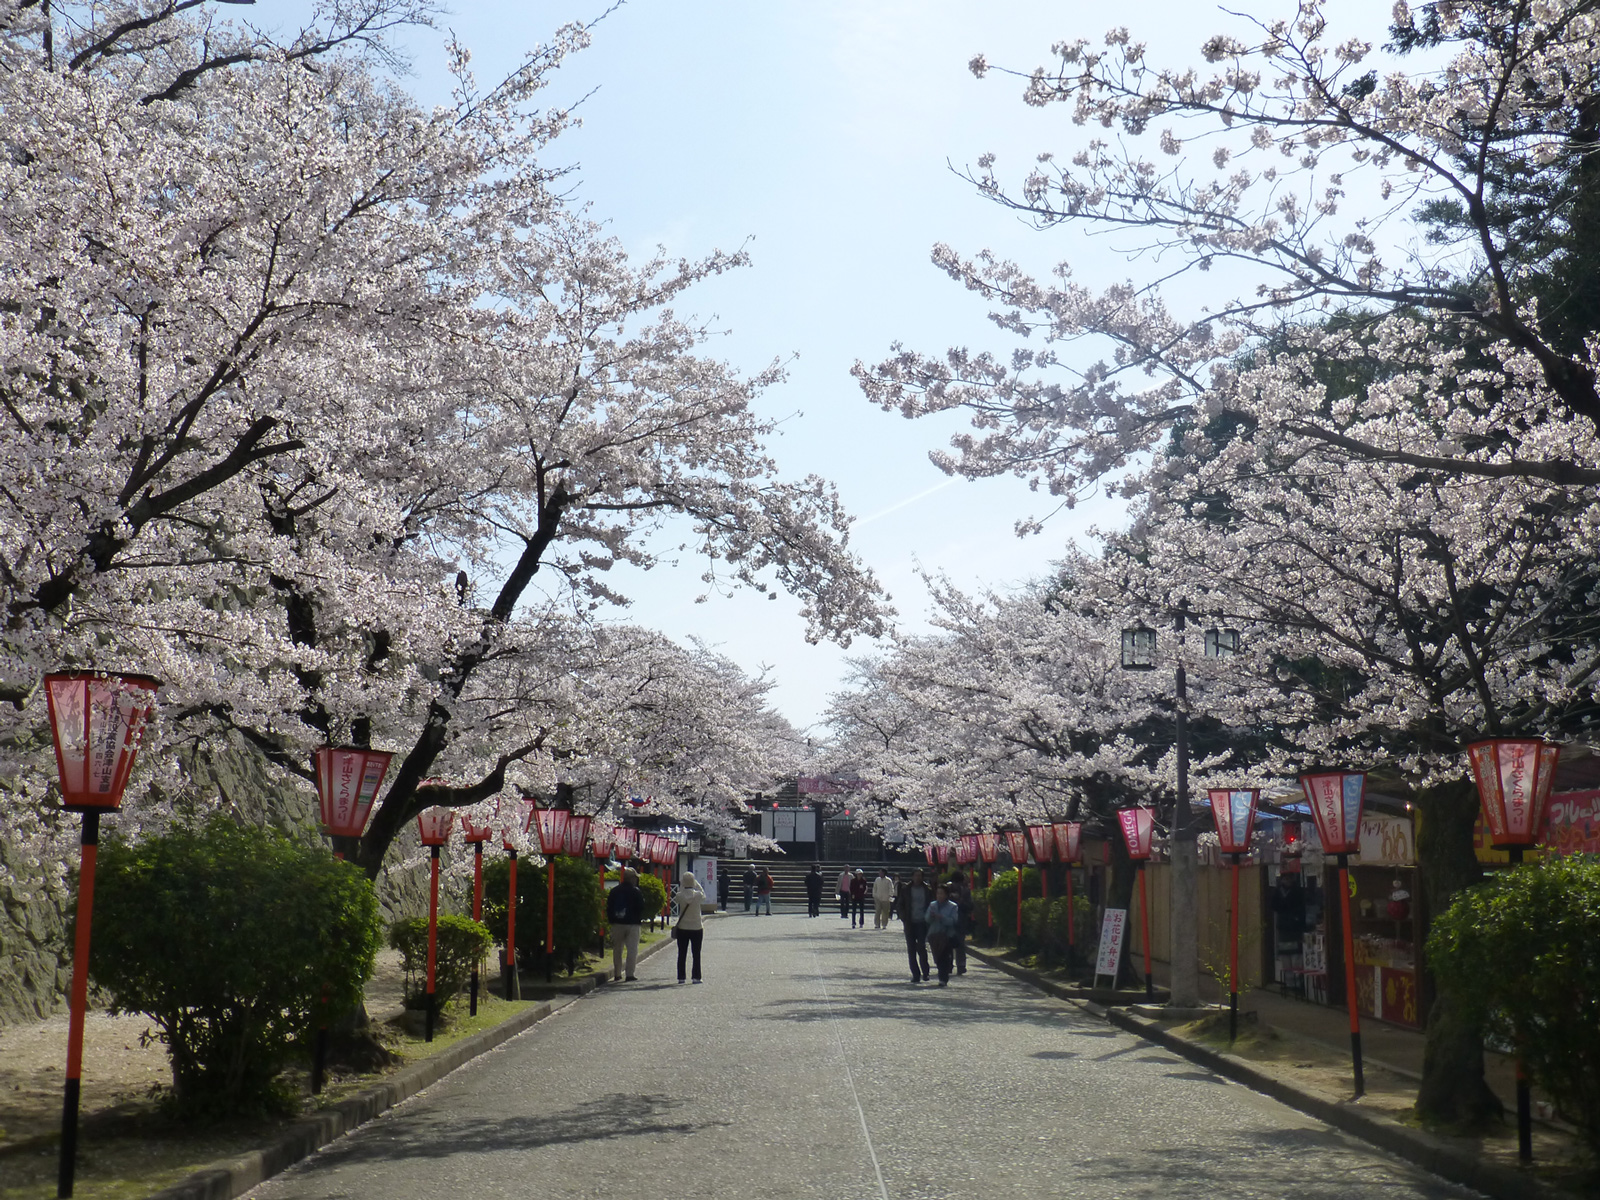 Sakura's, lanterns and festival stalls line the approach to Tsuyama Castle